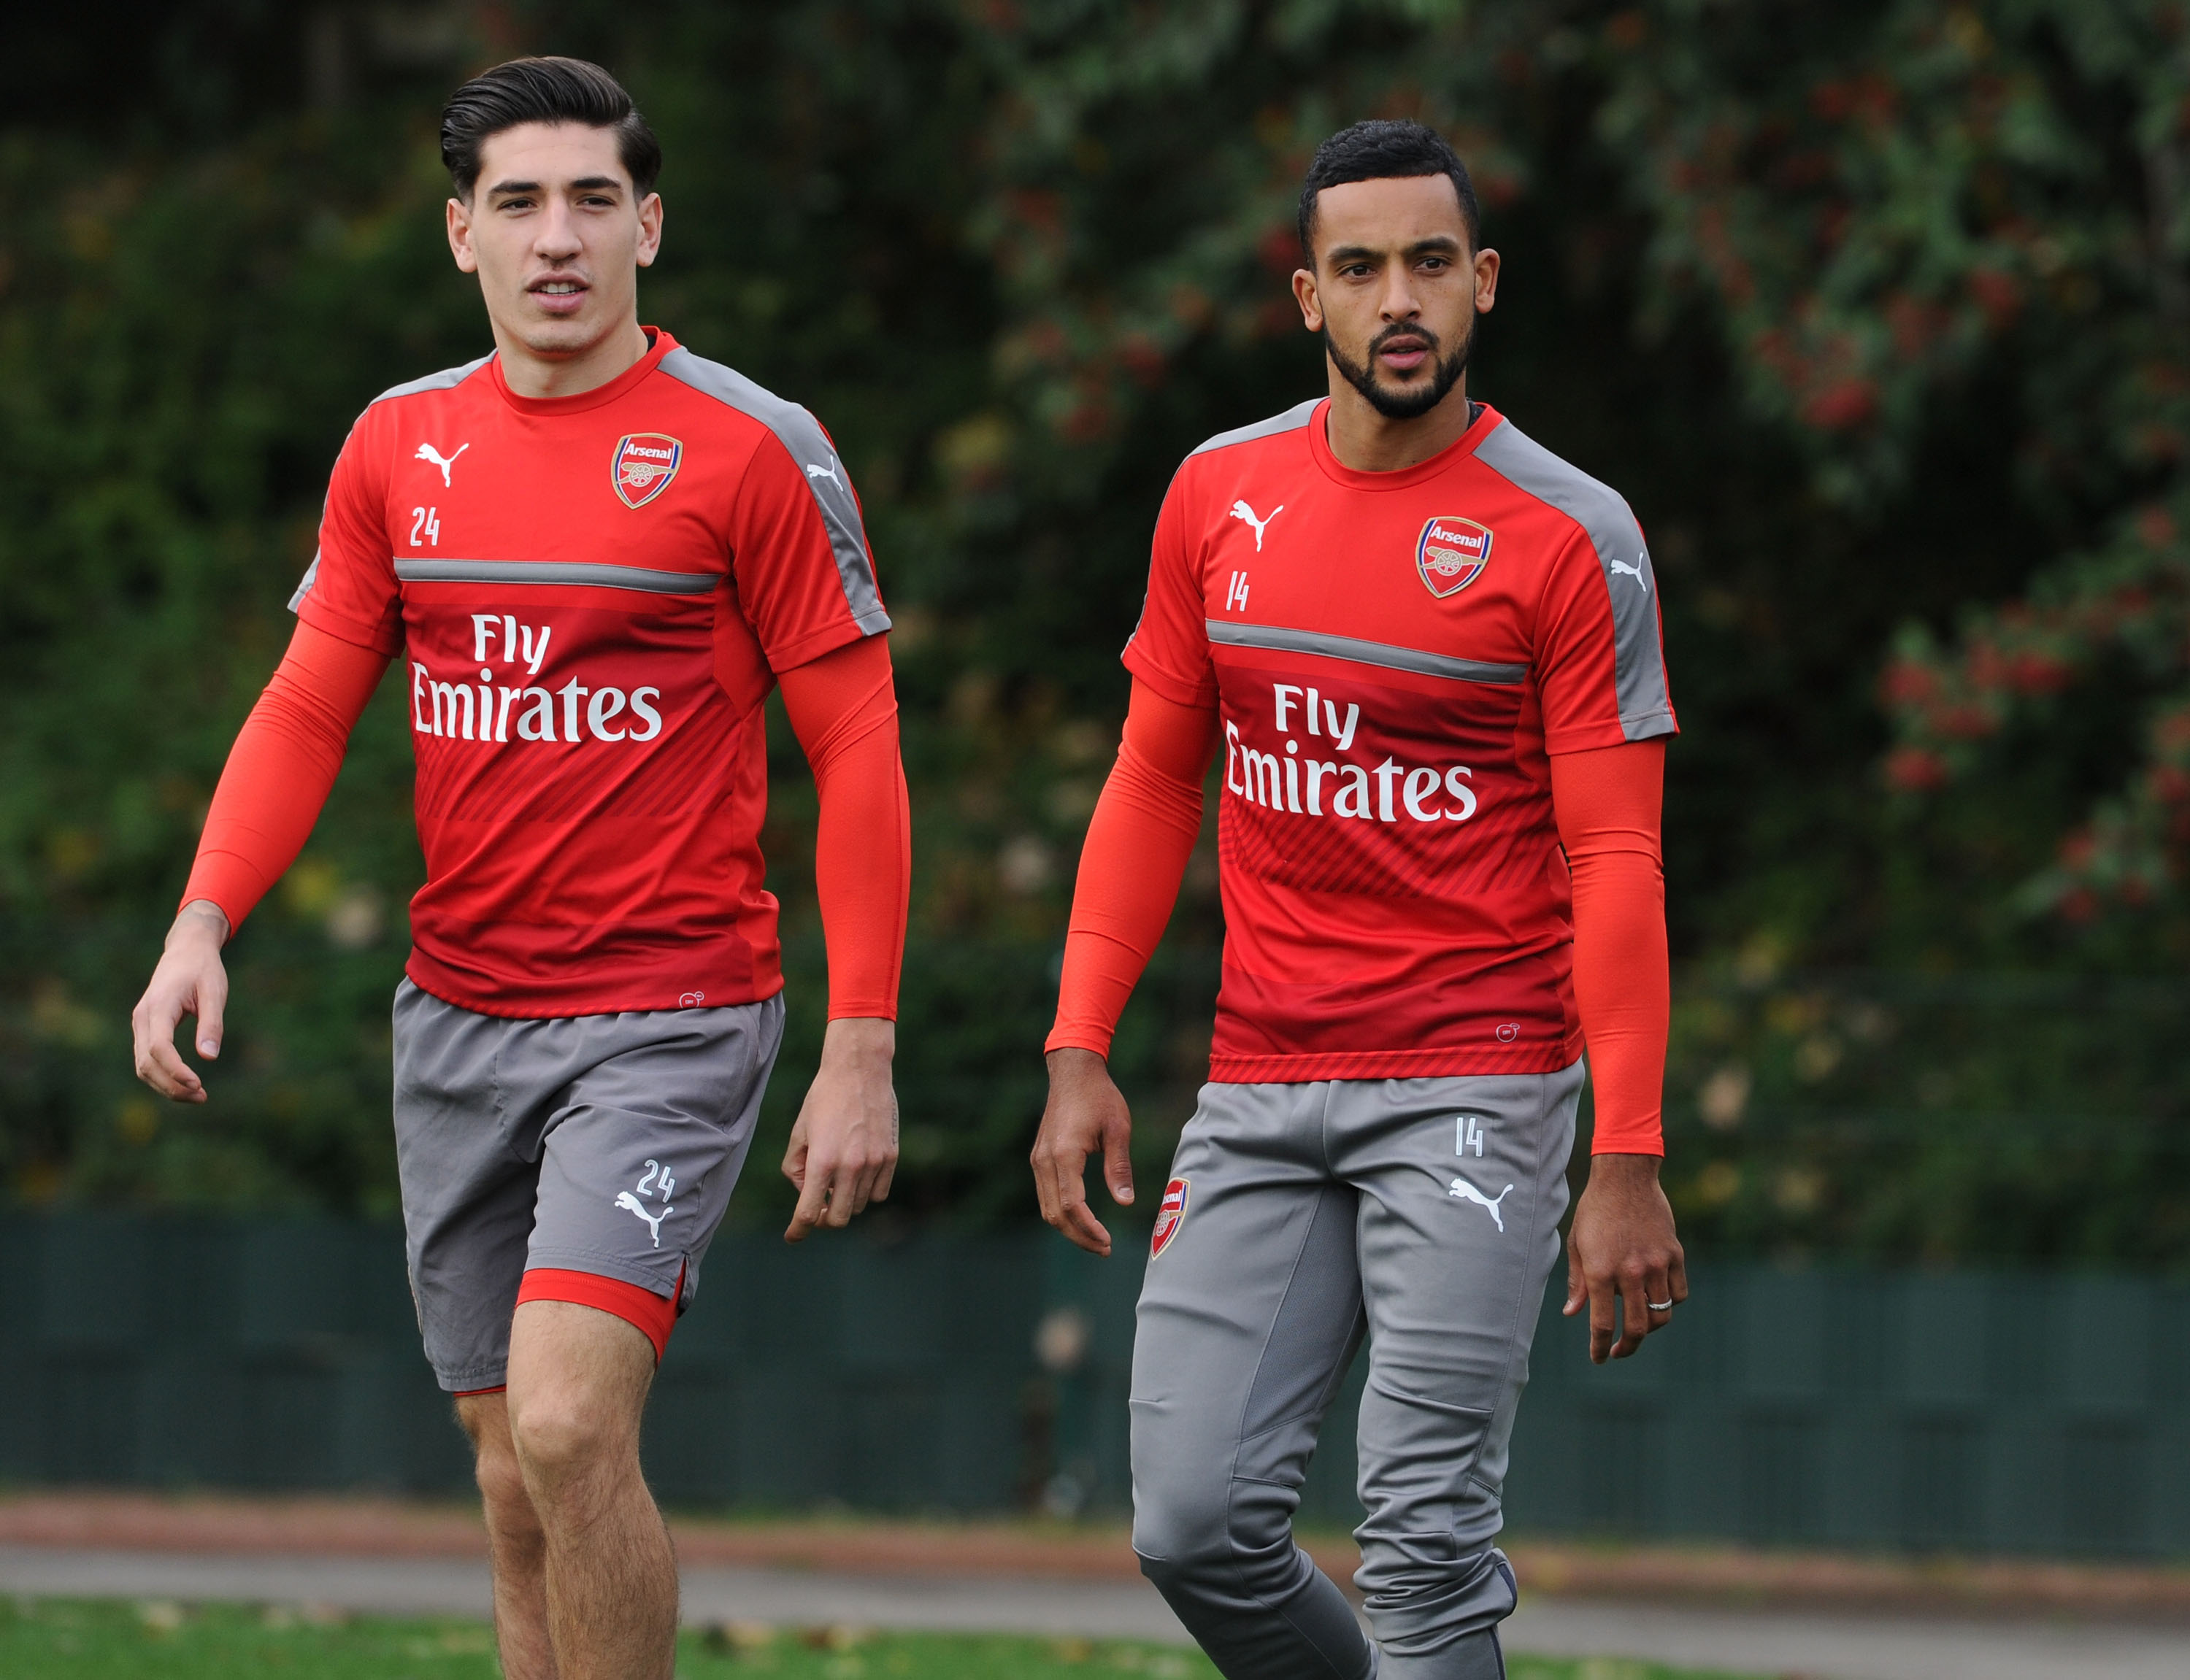 Chelsea star Willian reveals Arsenal forward Theo Walcott is the fastest player he's ever played against